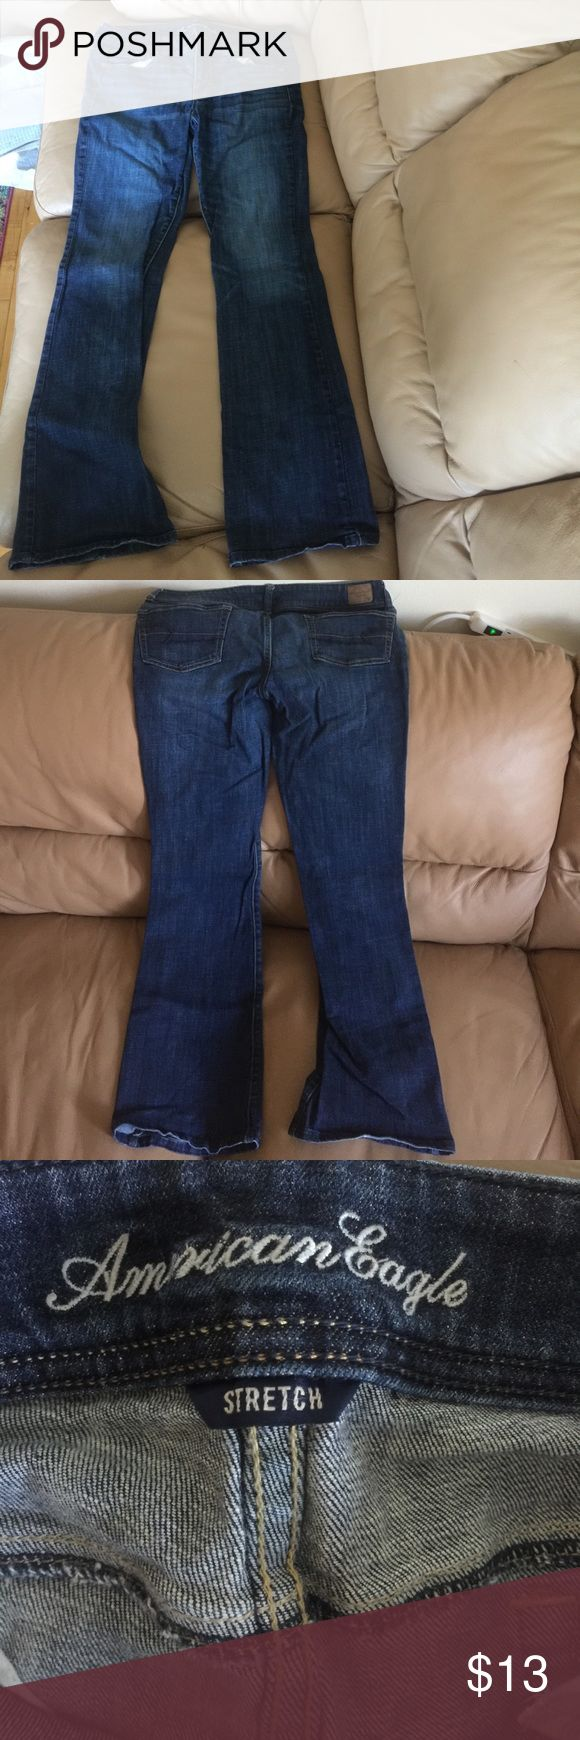 American Eagle Outfitters Jeans American Eagle Jeans... original bootcut . In great condition no fraying... ACCEPTING OFFERS*** American Eagle Outfitters Jeans Boot Cut